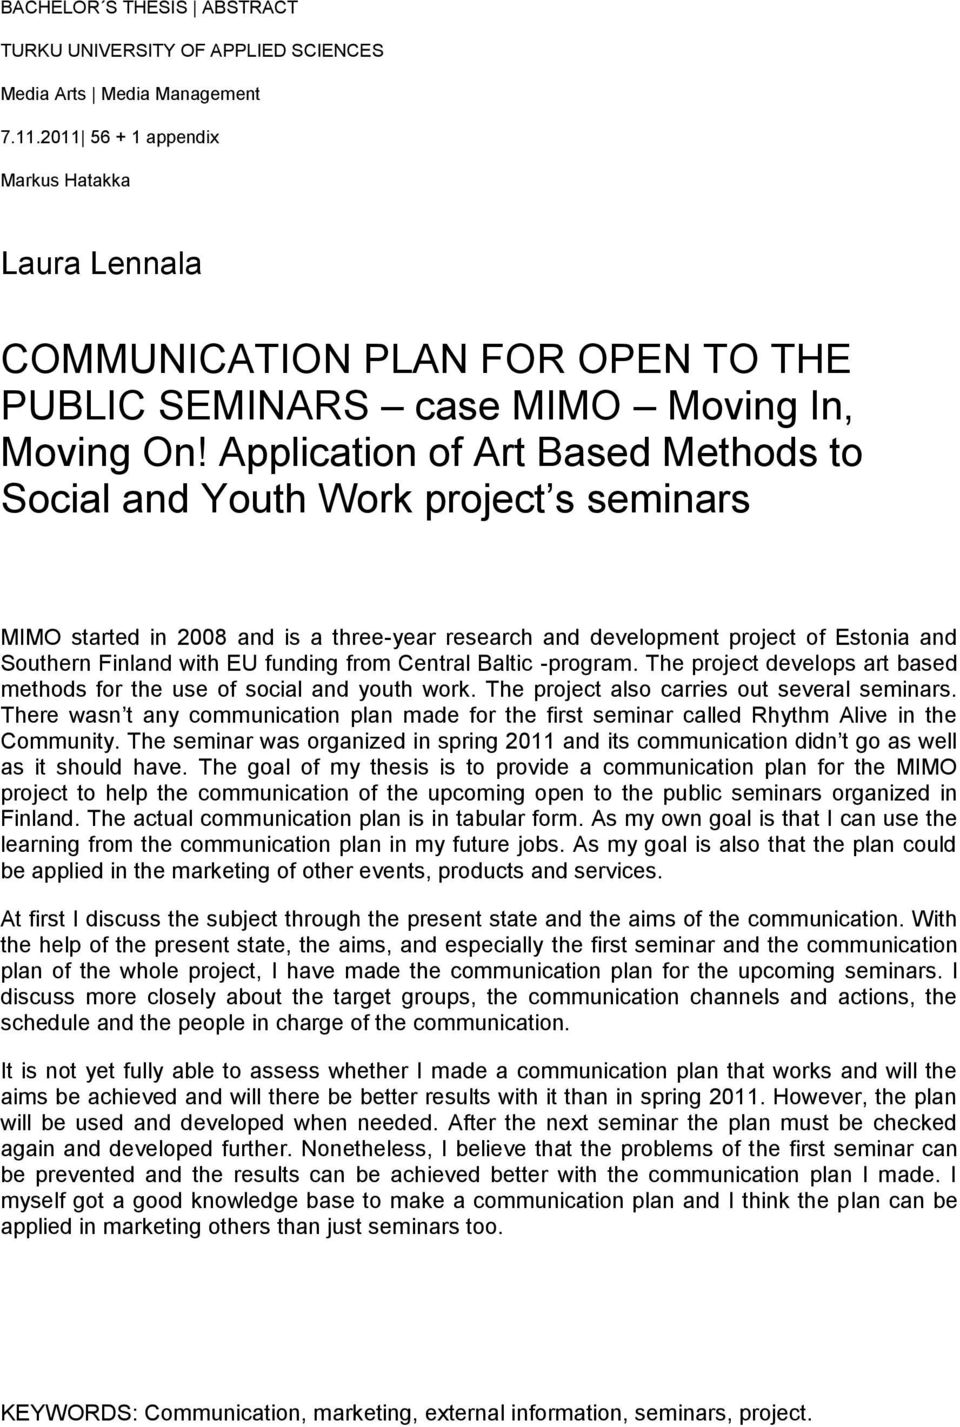 Application of Art Based Methods to Social and Youth Work project s seminars MIMO started in 2008 and is a three-year research and development project of Estonia and Southern Finland with EU funding